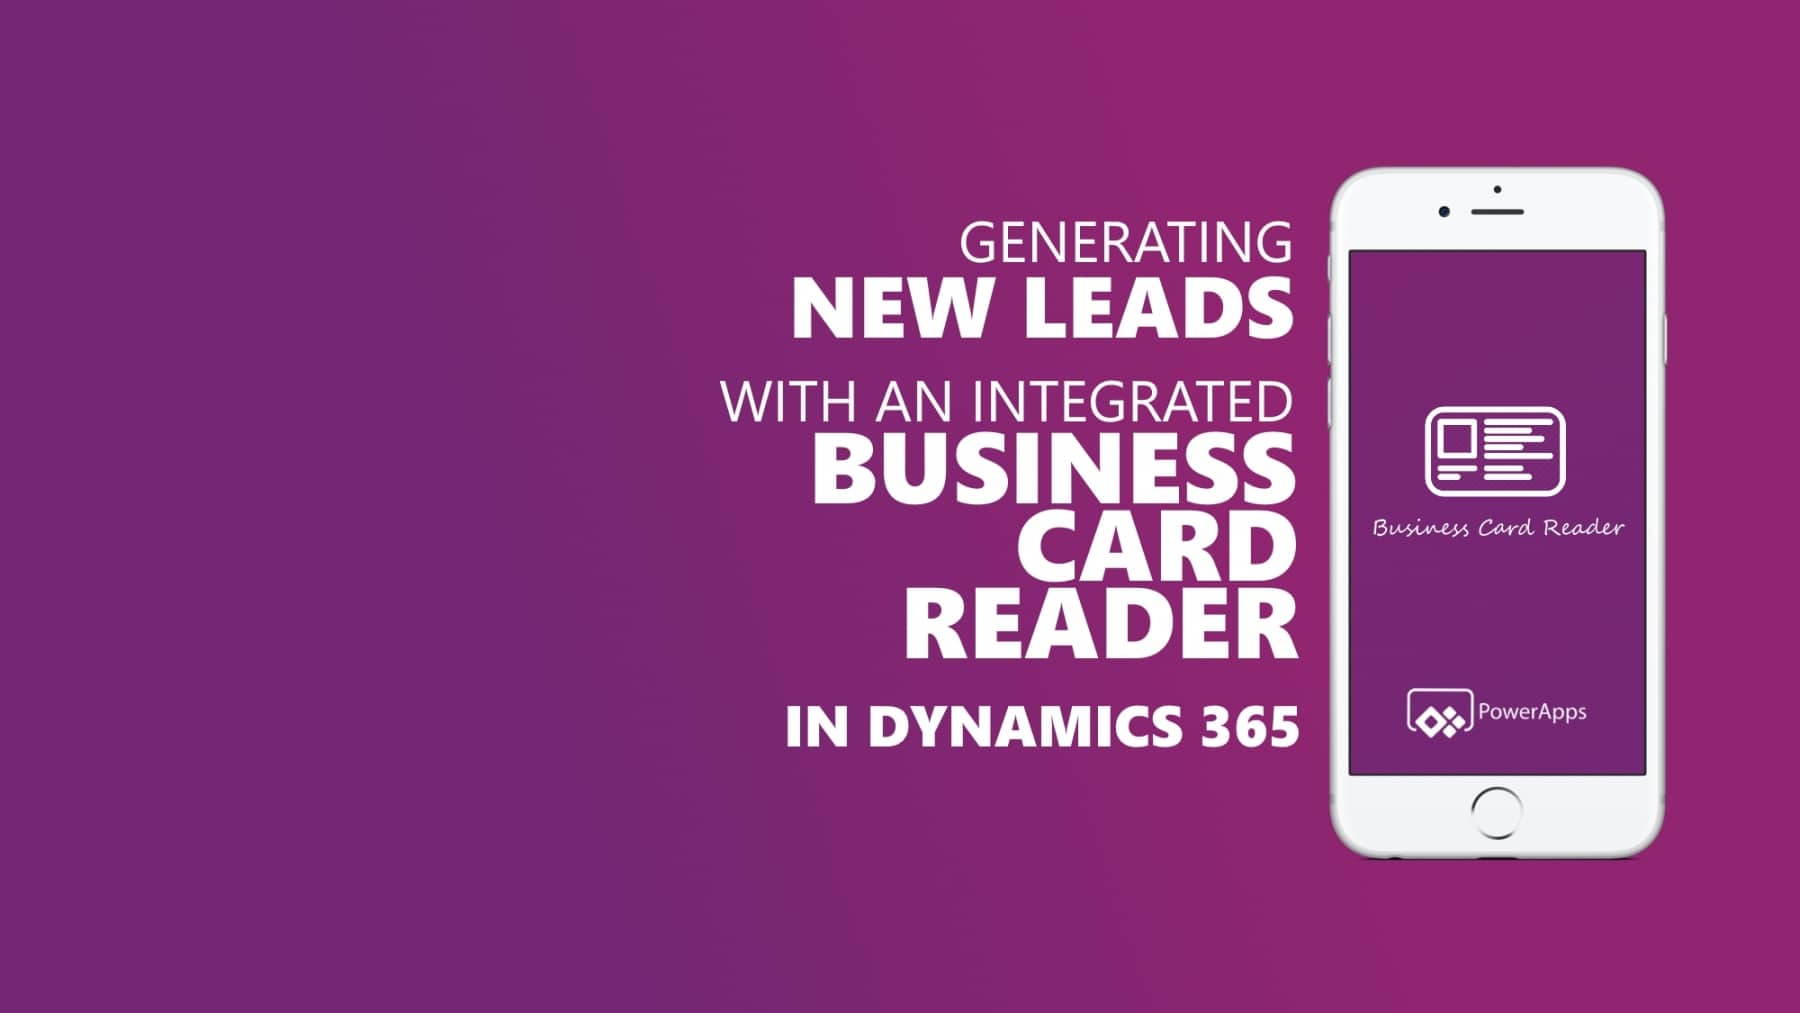 Dynamics 365 Generating Leads Business Card Reader PowerApps Titelbild